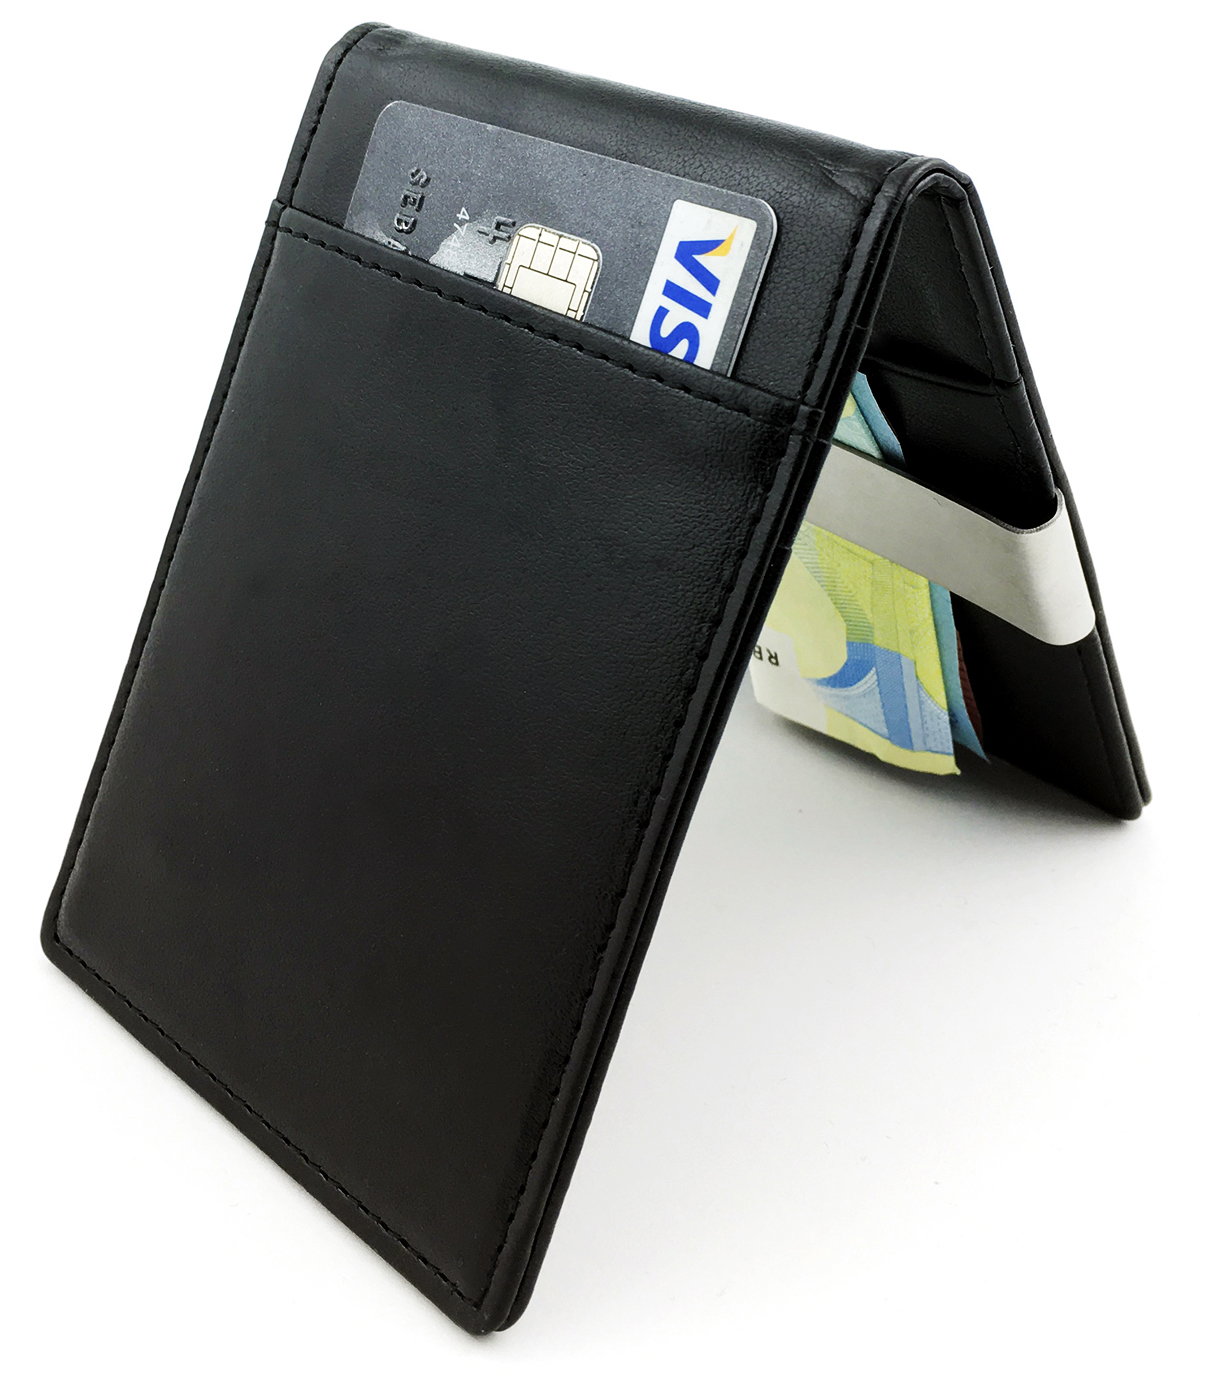 a6db5057bc40 Home / Wallet and Purse / Small and Slim Front Pocket Wallet and Purse / Money  Clip Wallet – Bifold Front Pocket Rfid Blocking Credit Card Case for Men ...